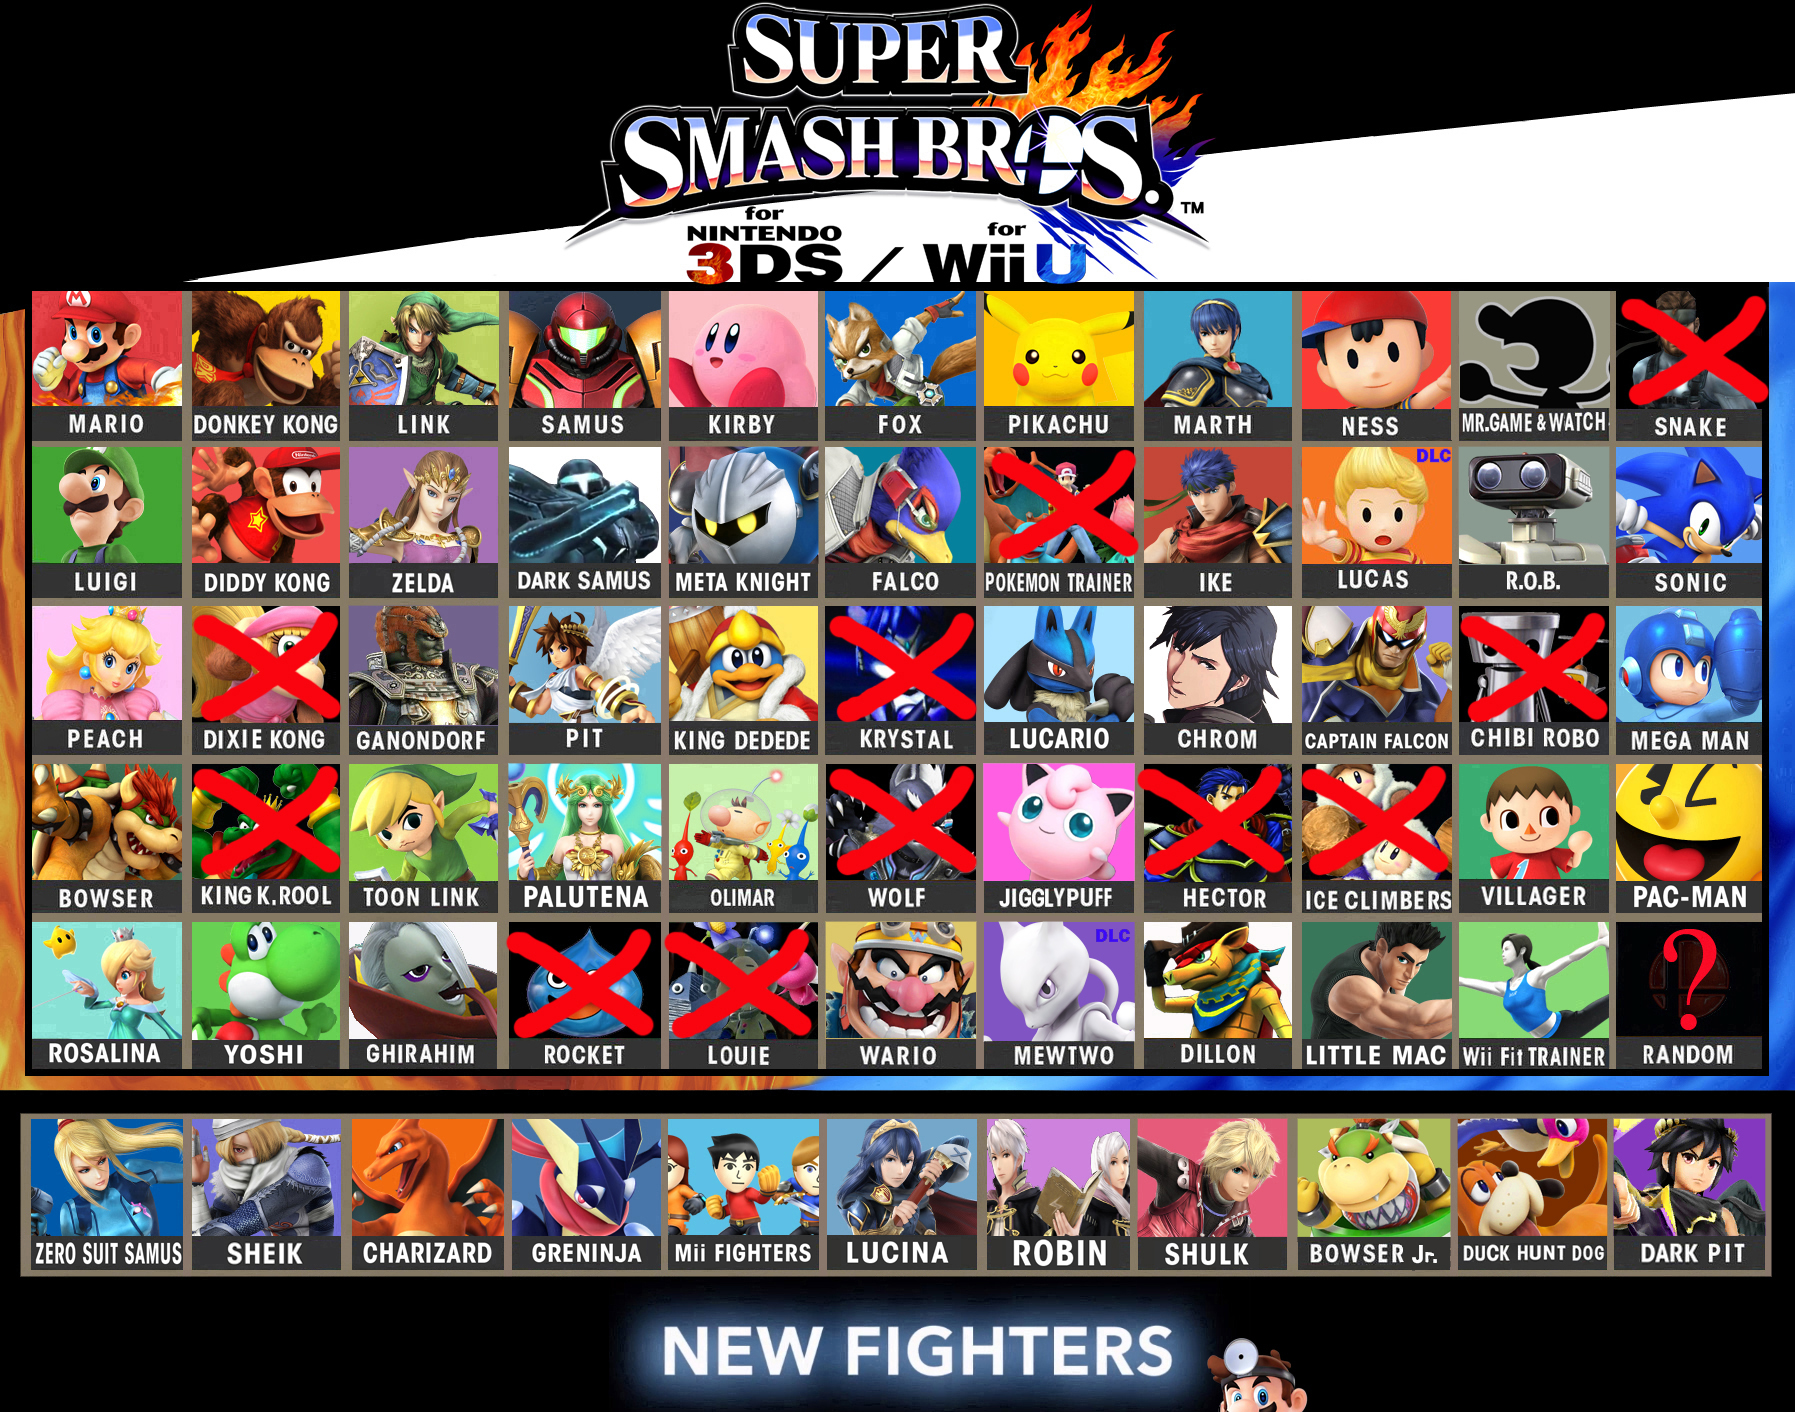 super smash 3ds matchmaking Super smash bros for nintendo 3ds and super smash bros for wii u are  fighting video  although the game does not feature a ranking system for online  matches, matchmaking between players of similar skill levels was introduced  online.